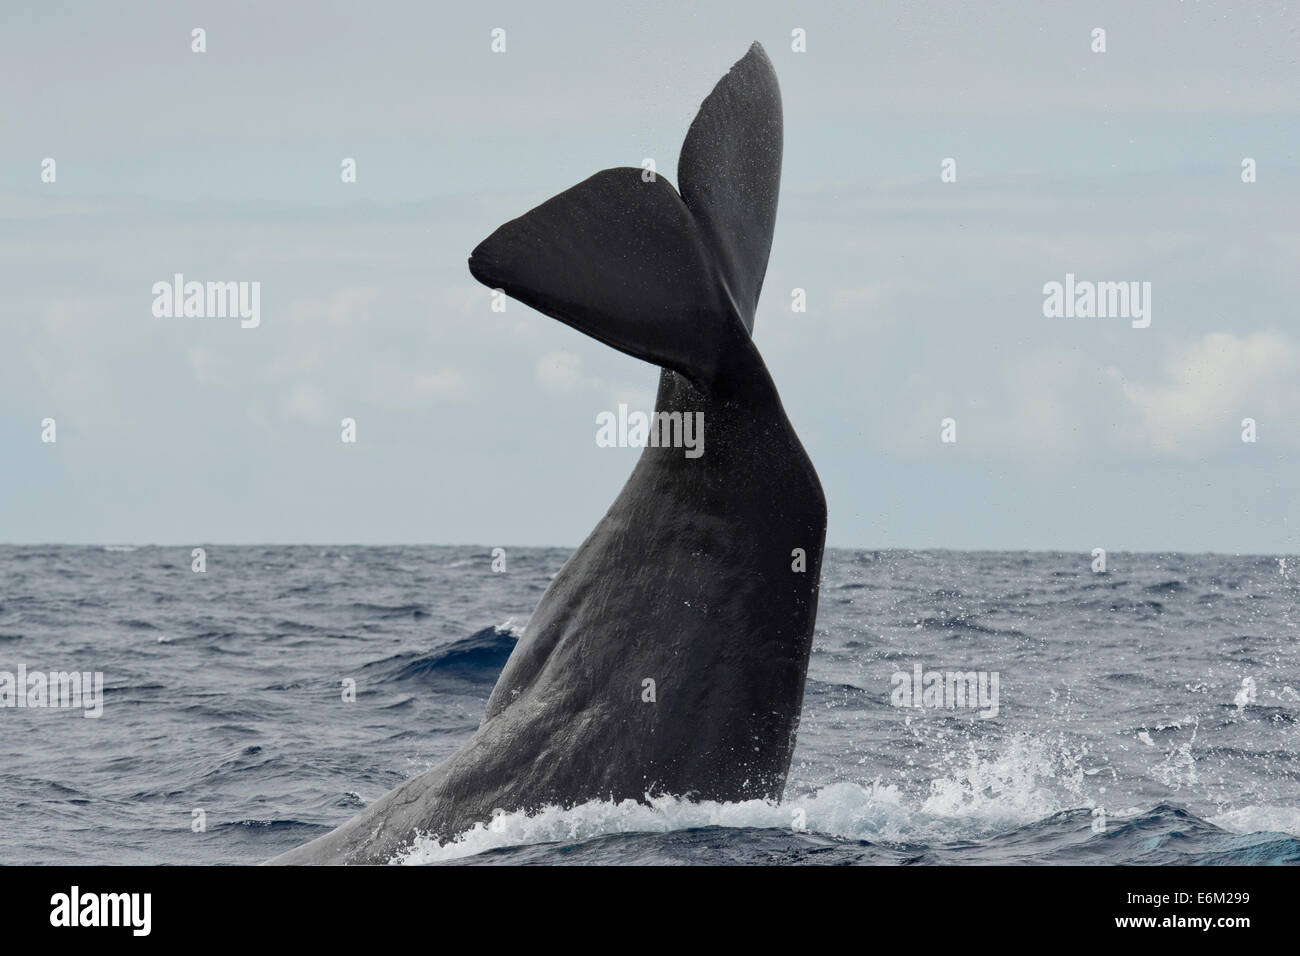 Sperm Whale, Physeter macrocephalus, lob-tailing at the surface. Azores, Atlantic Ocean. - Stock Image